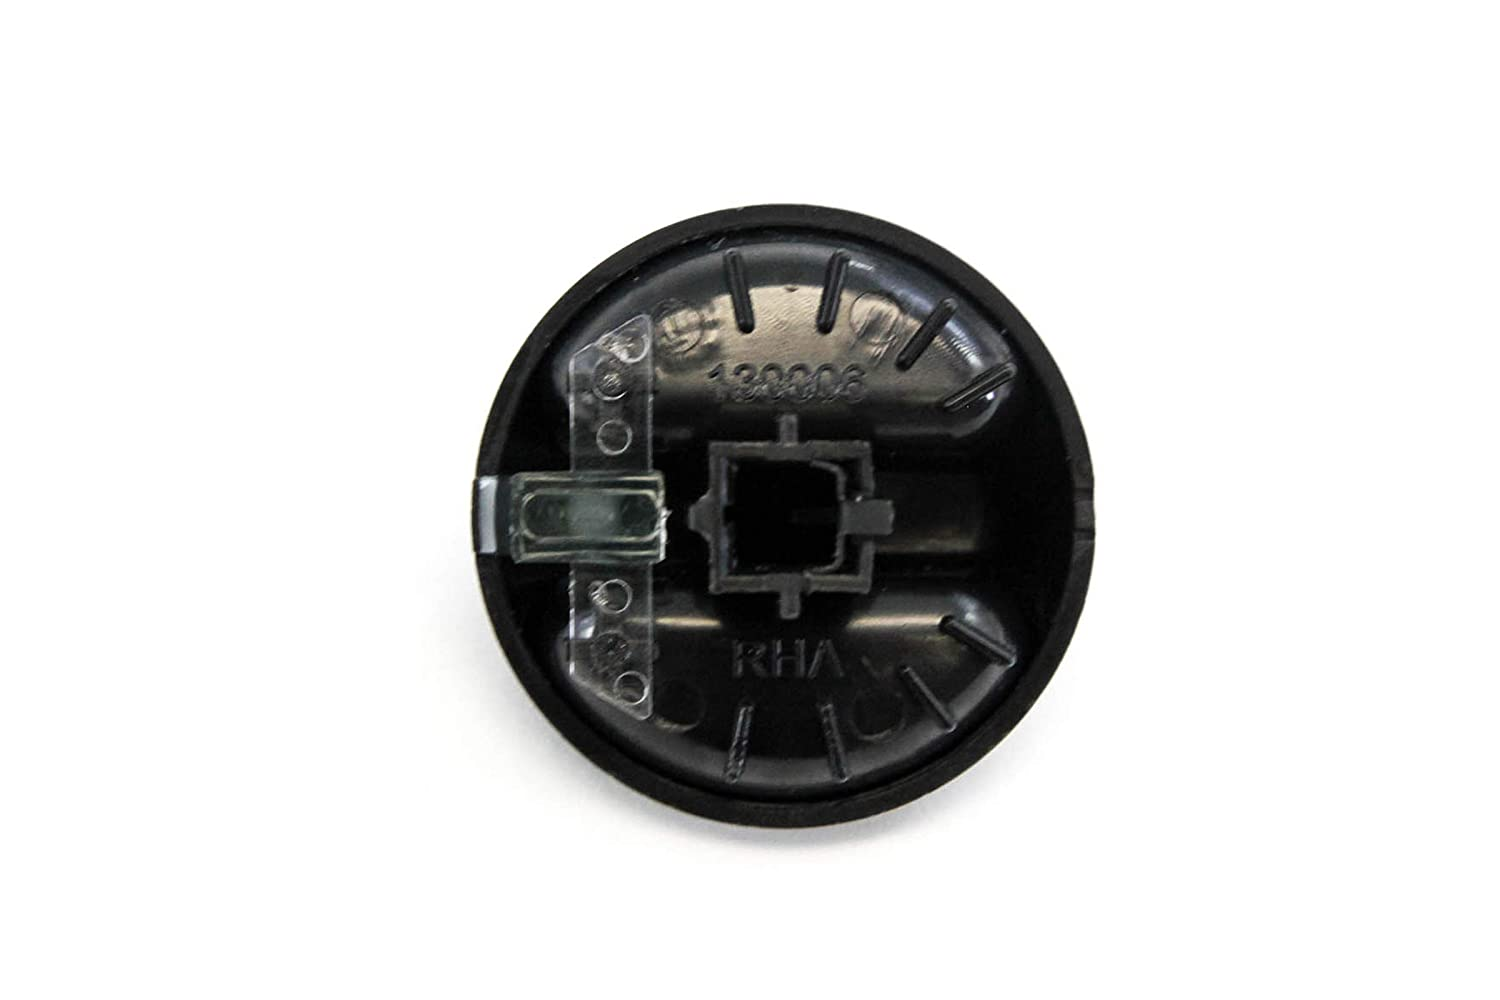 Compatible with Toyota Tundra 2000-2006 Control Knob Heater A//C or Fan Single Replacement for Lost or Damaged Control Knobs